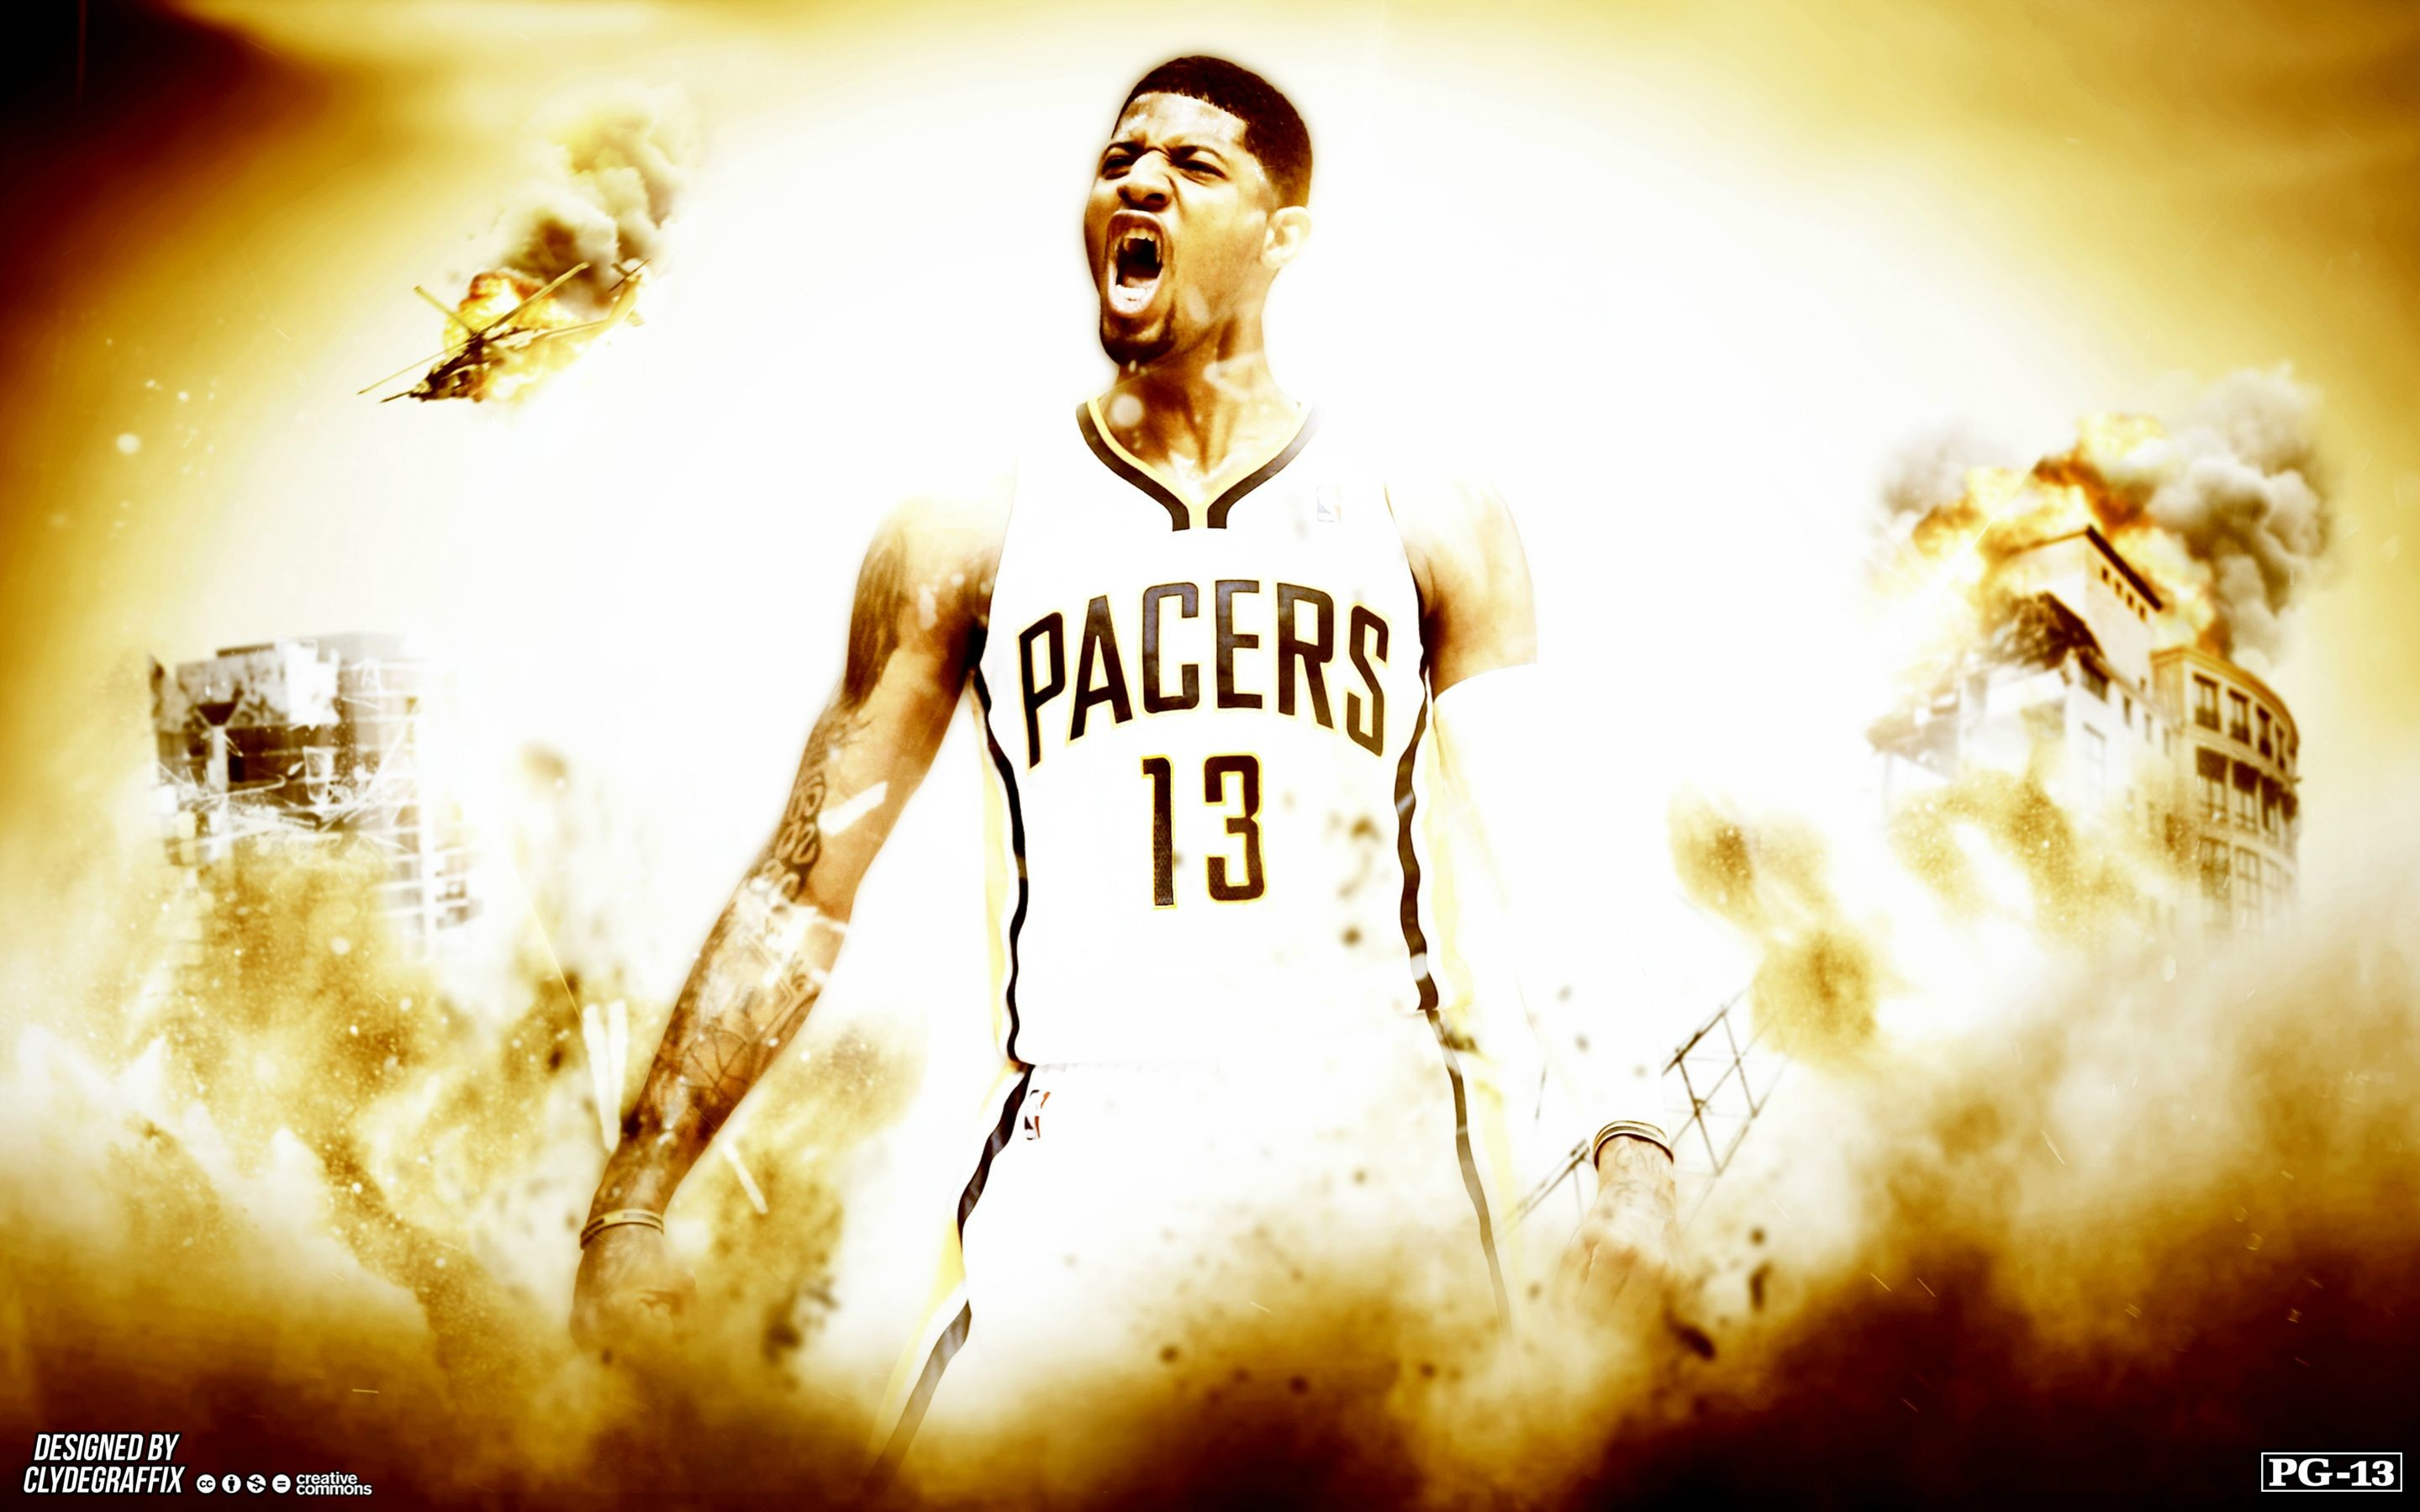 Made a Paul George wallpaper I thought you guys might like!